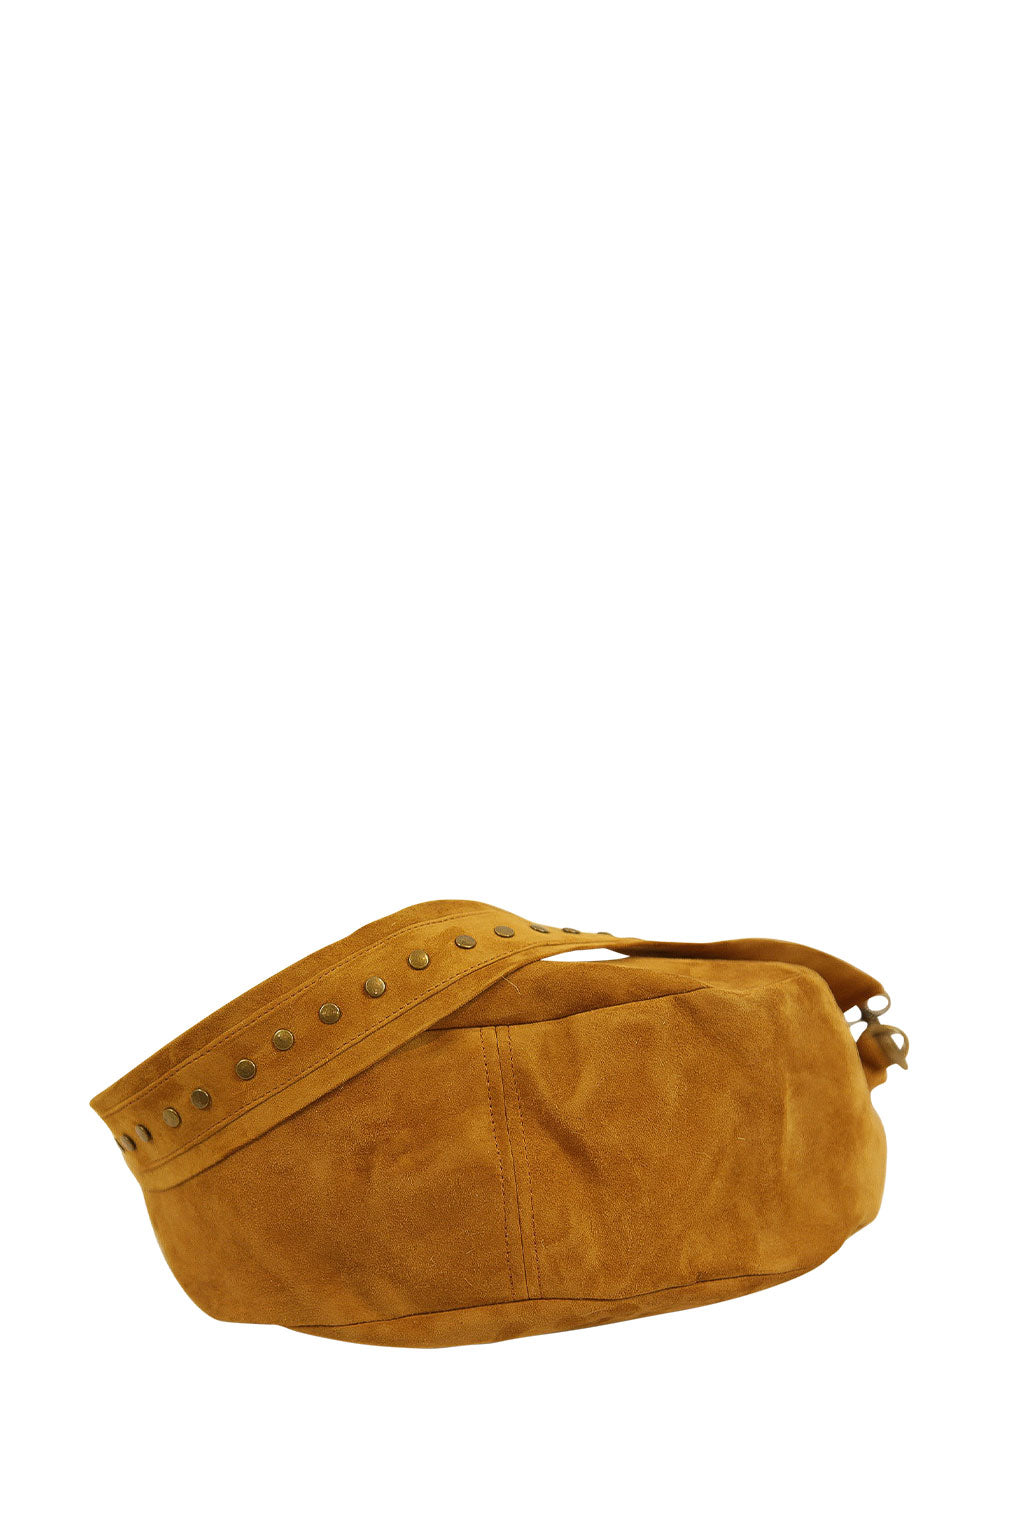 Nancy Tan Suede with Studded Strap Bottom